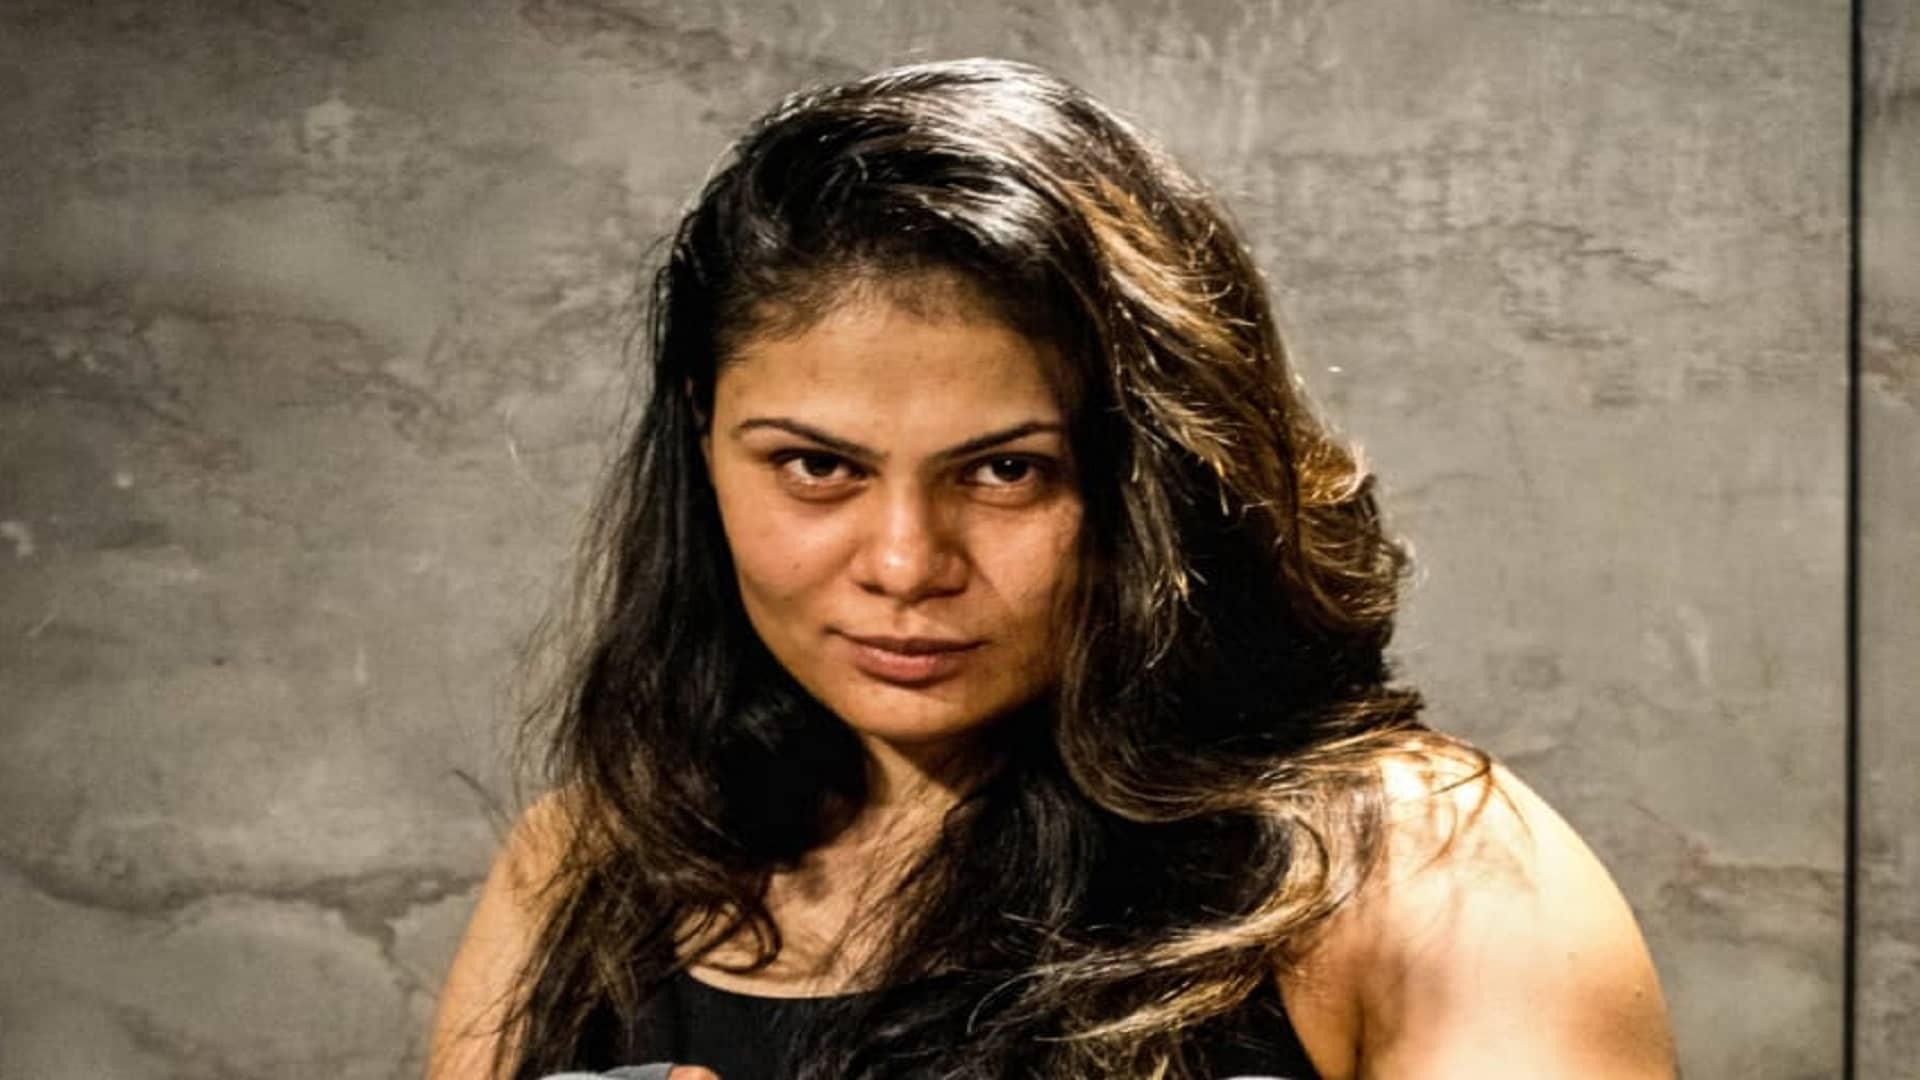 https://lockerroom.in/blog/view/Geeta-Solanki-Indian-Boxer-Punch-6